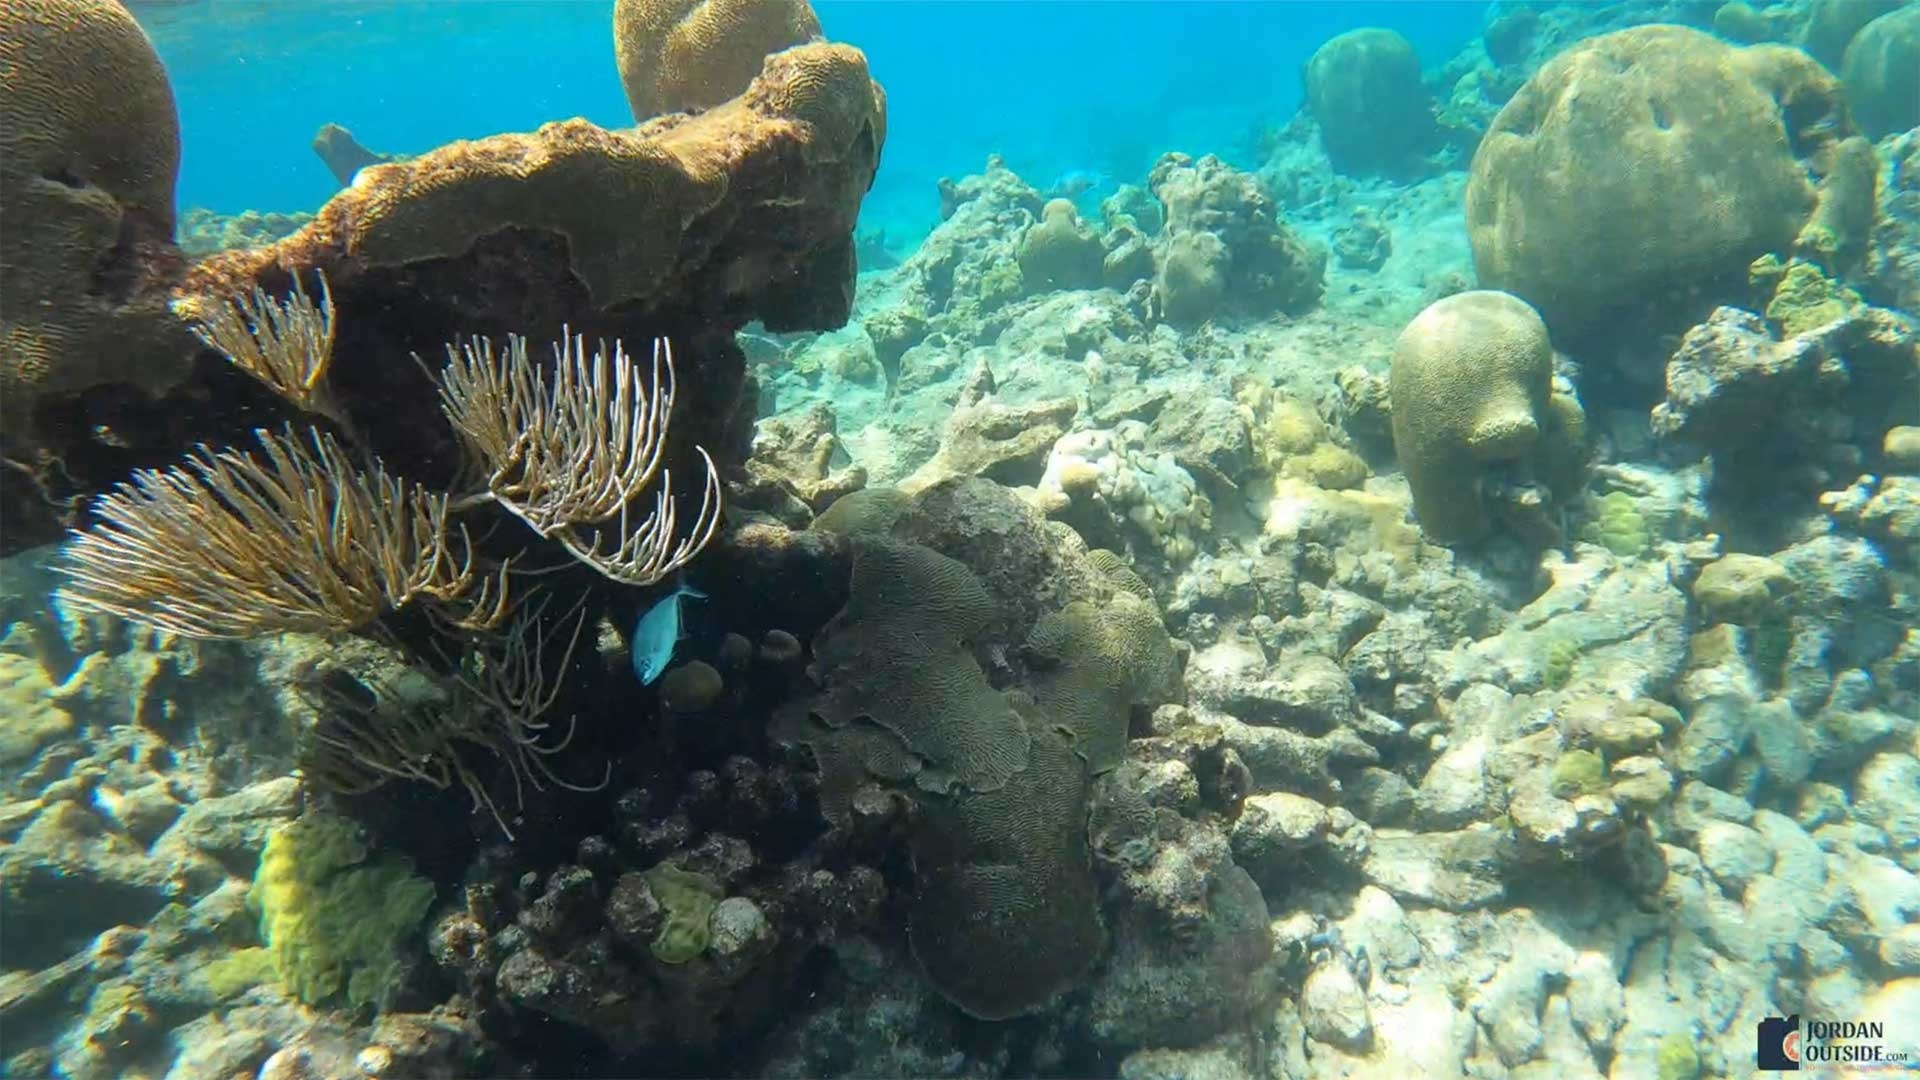 Coral Reef at Buck Island, St. Croix